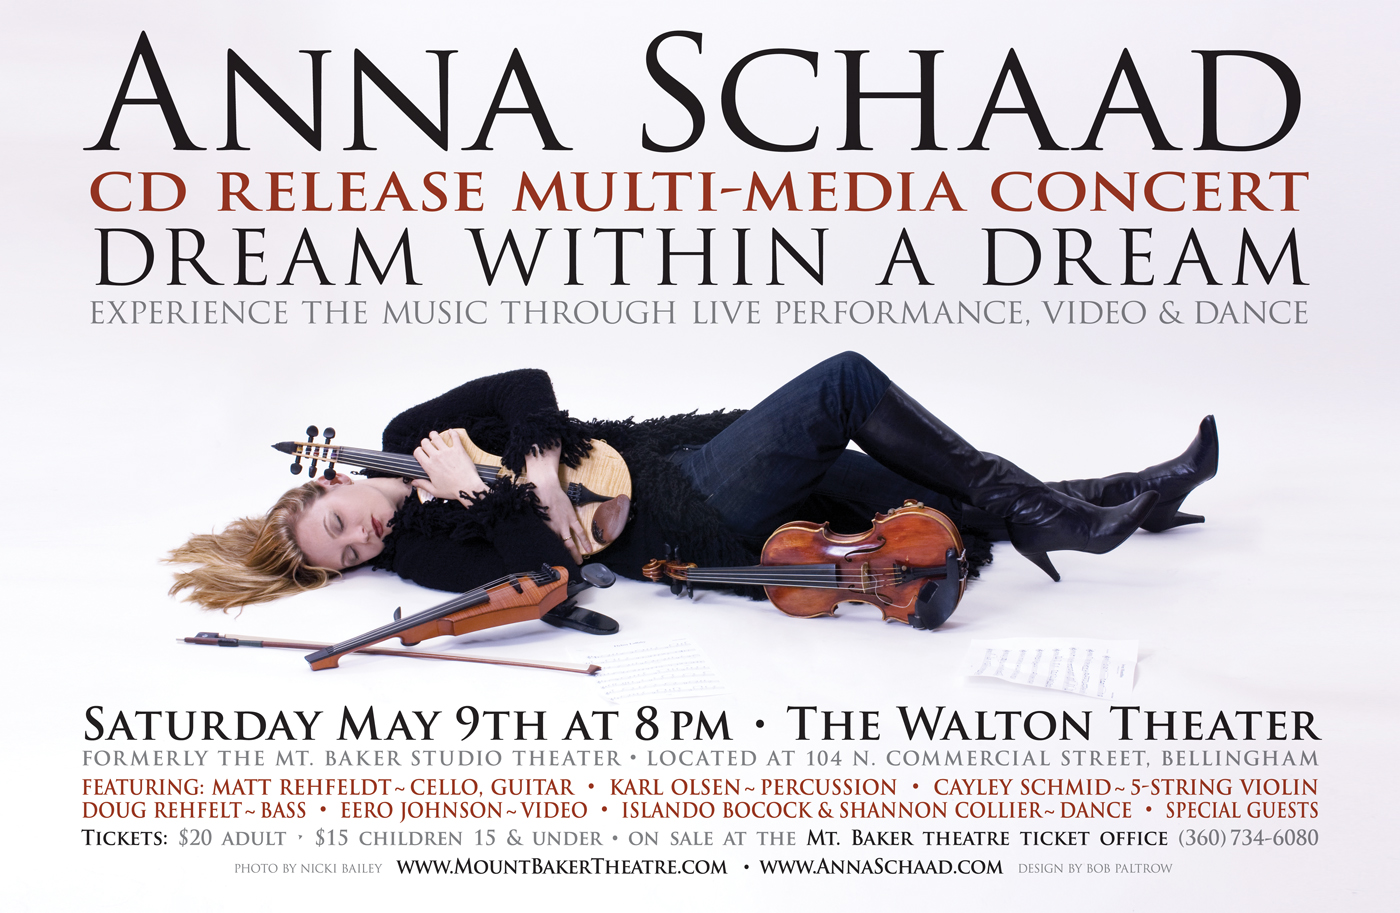 Anna Schaad - Dream Within A Dream - Poster Design by Bob Paltrow